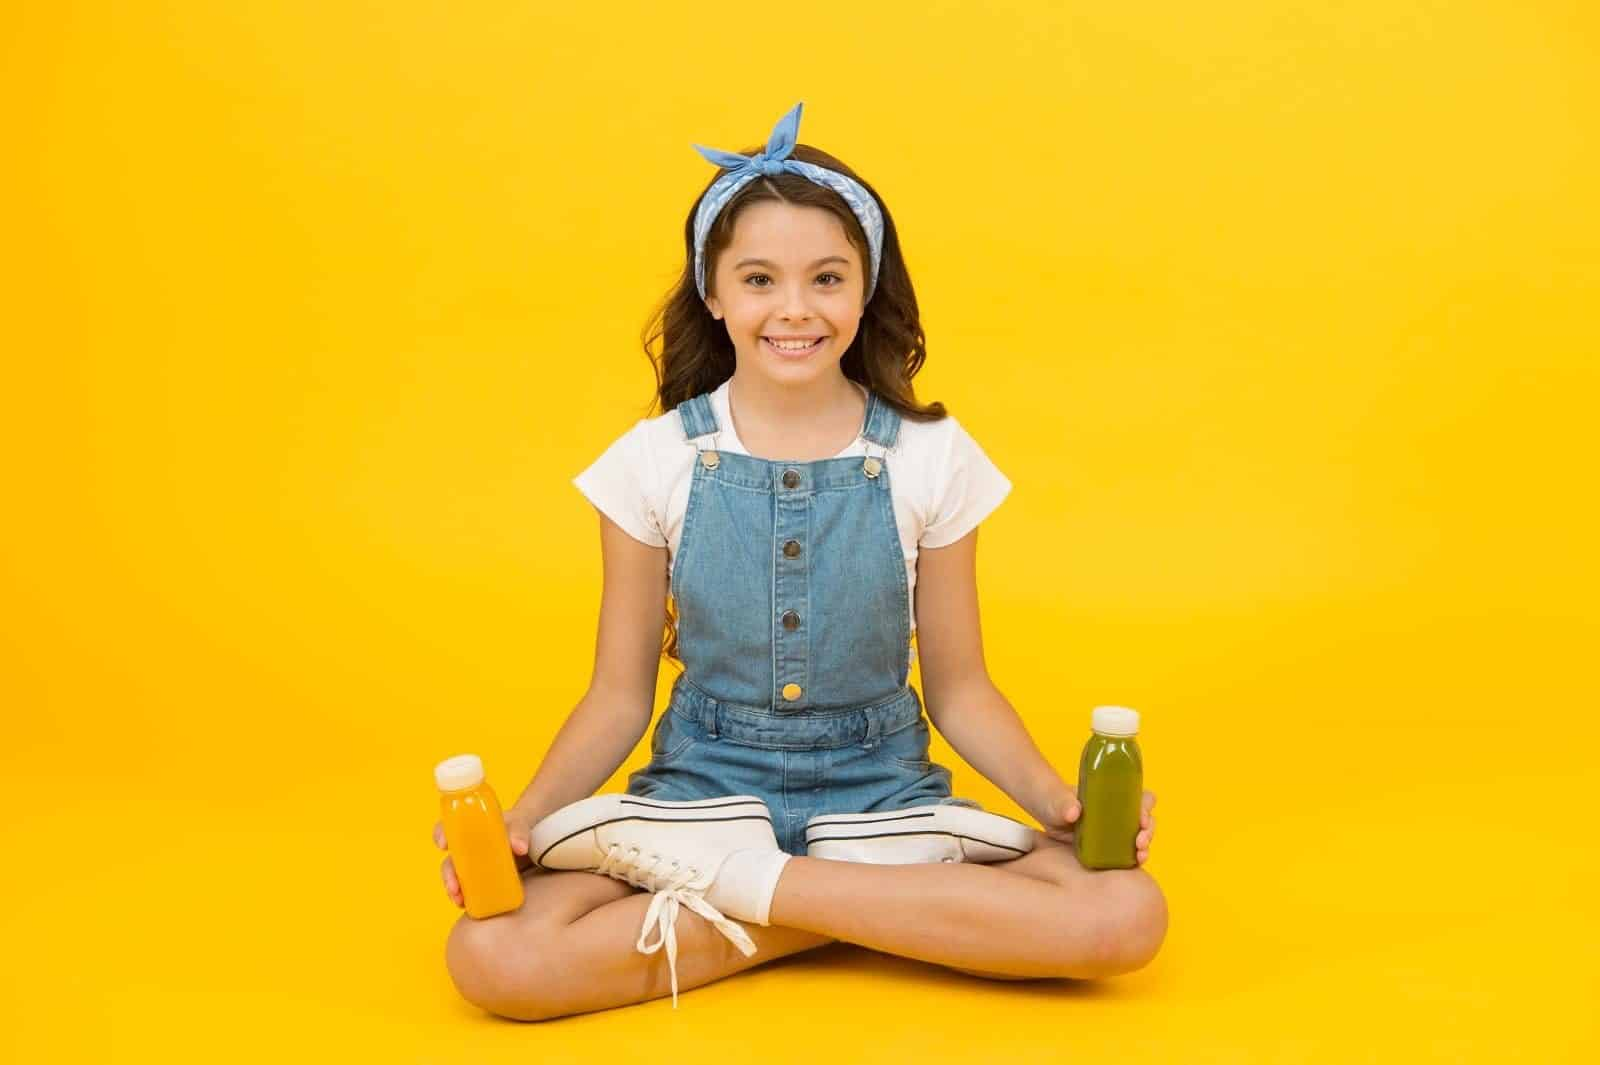 Yoga training. KId girl sit meditate. Meditating practice. Good vibes. Peaceful meditating. Vegetarian smoothie drink. Learn meditating techniques. Stay positive and optimistic. Healthy way of life.